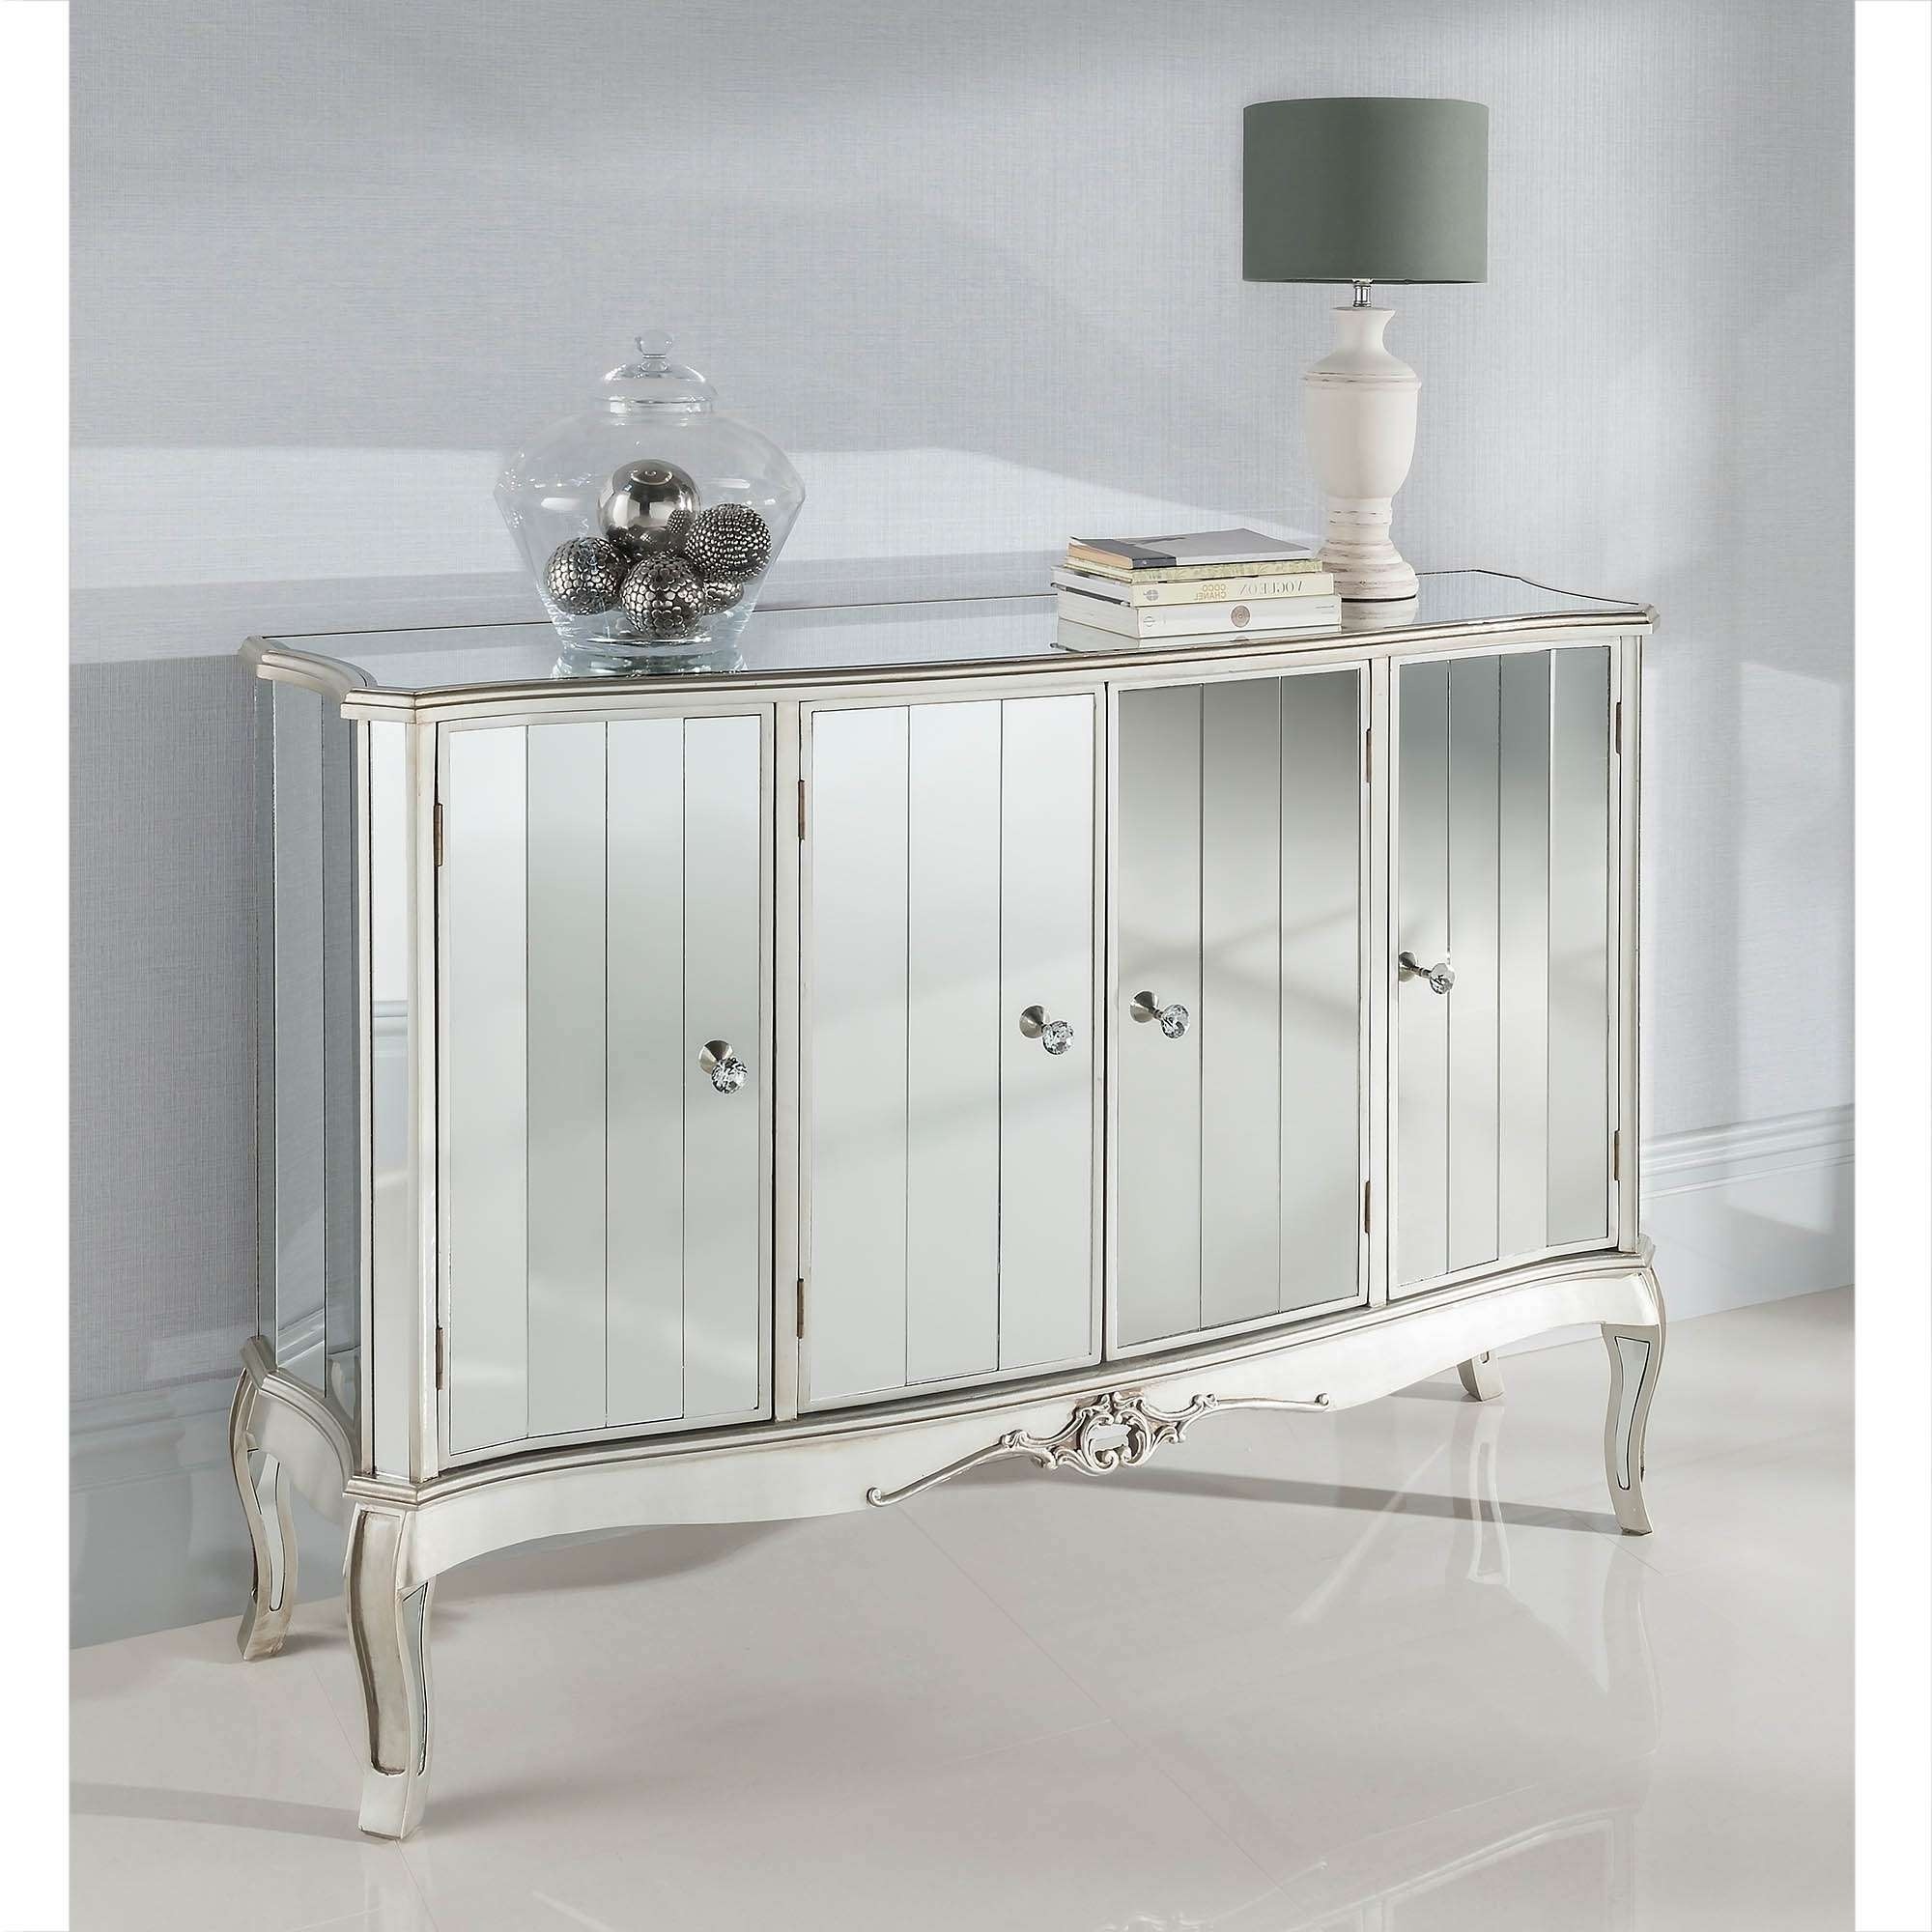 Argente Mirrored Four Door Sideboard | Mirrored Furniture With Black And Silver Sideboards (View 2 of 20)